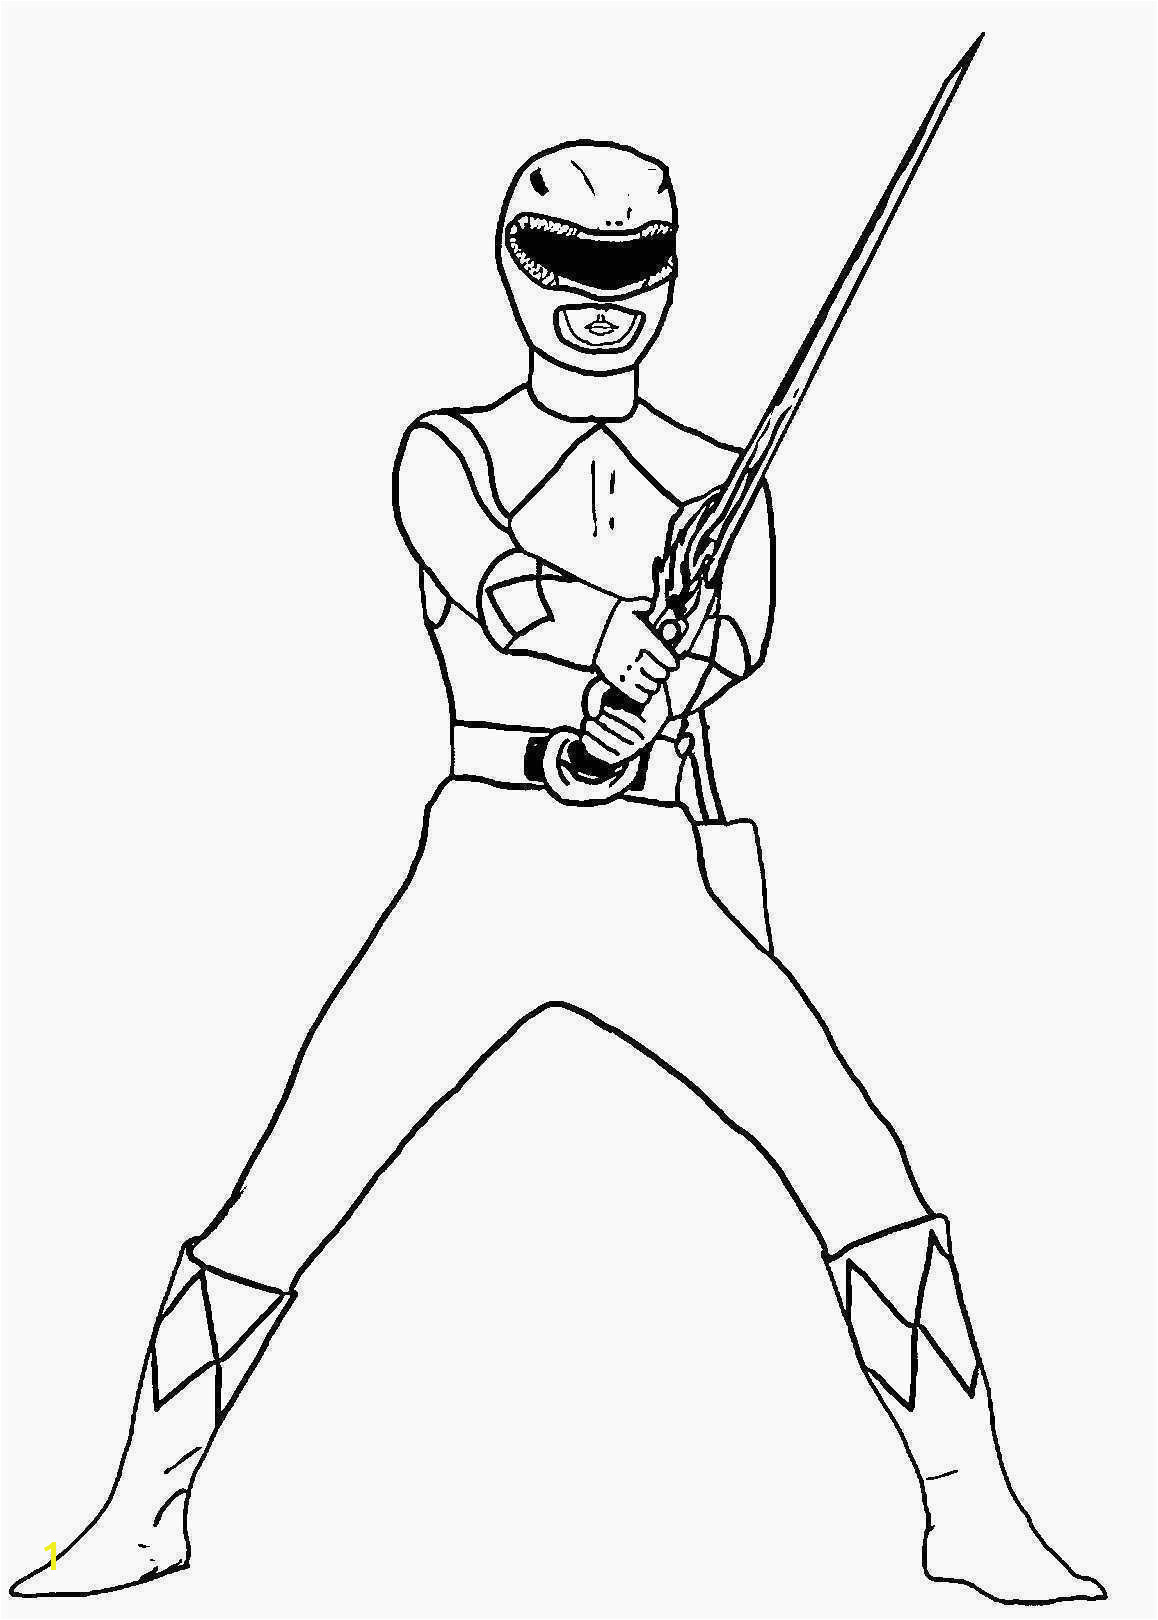 Power Rangers Samurai Coloriage Beautiful 27 Power Rangers Printable Coloring Pic Dbz Coloring Pages